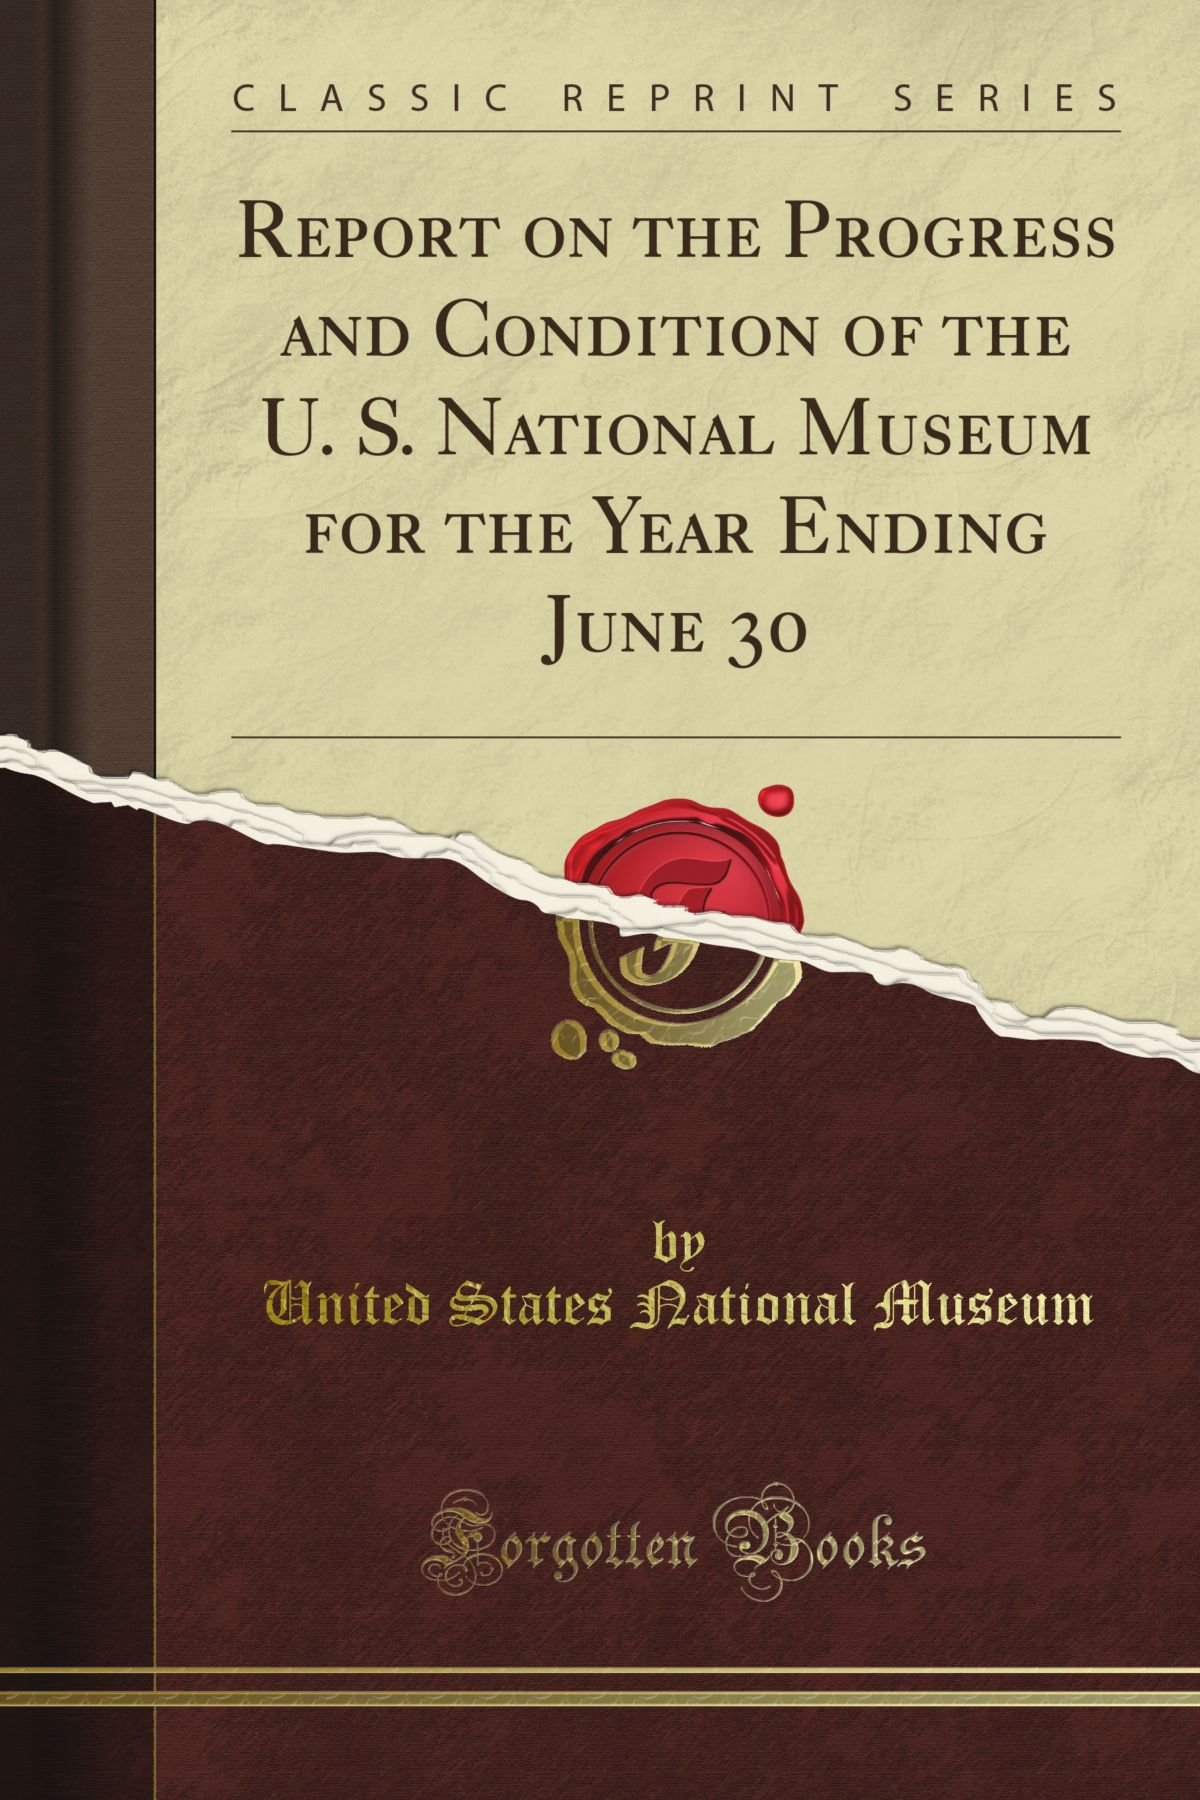 Report on the Progress and Condition of the U. S. National Museum for the Year Ending June 30 (Classic Reprint) PDF